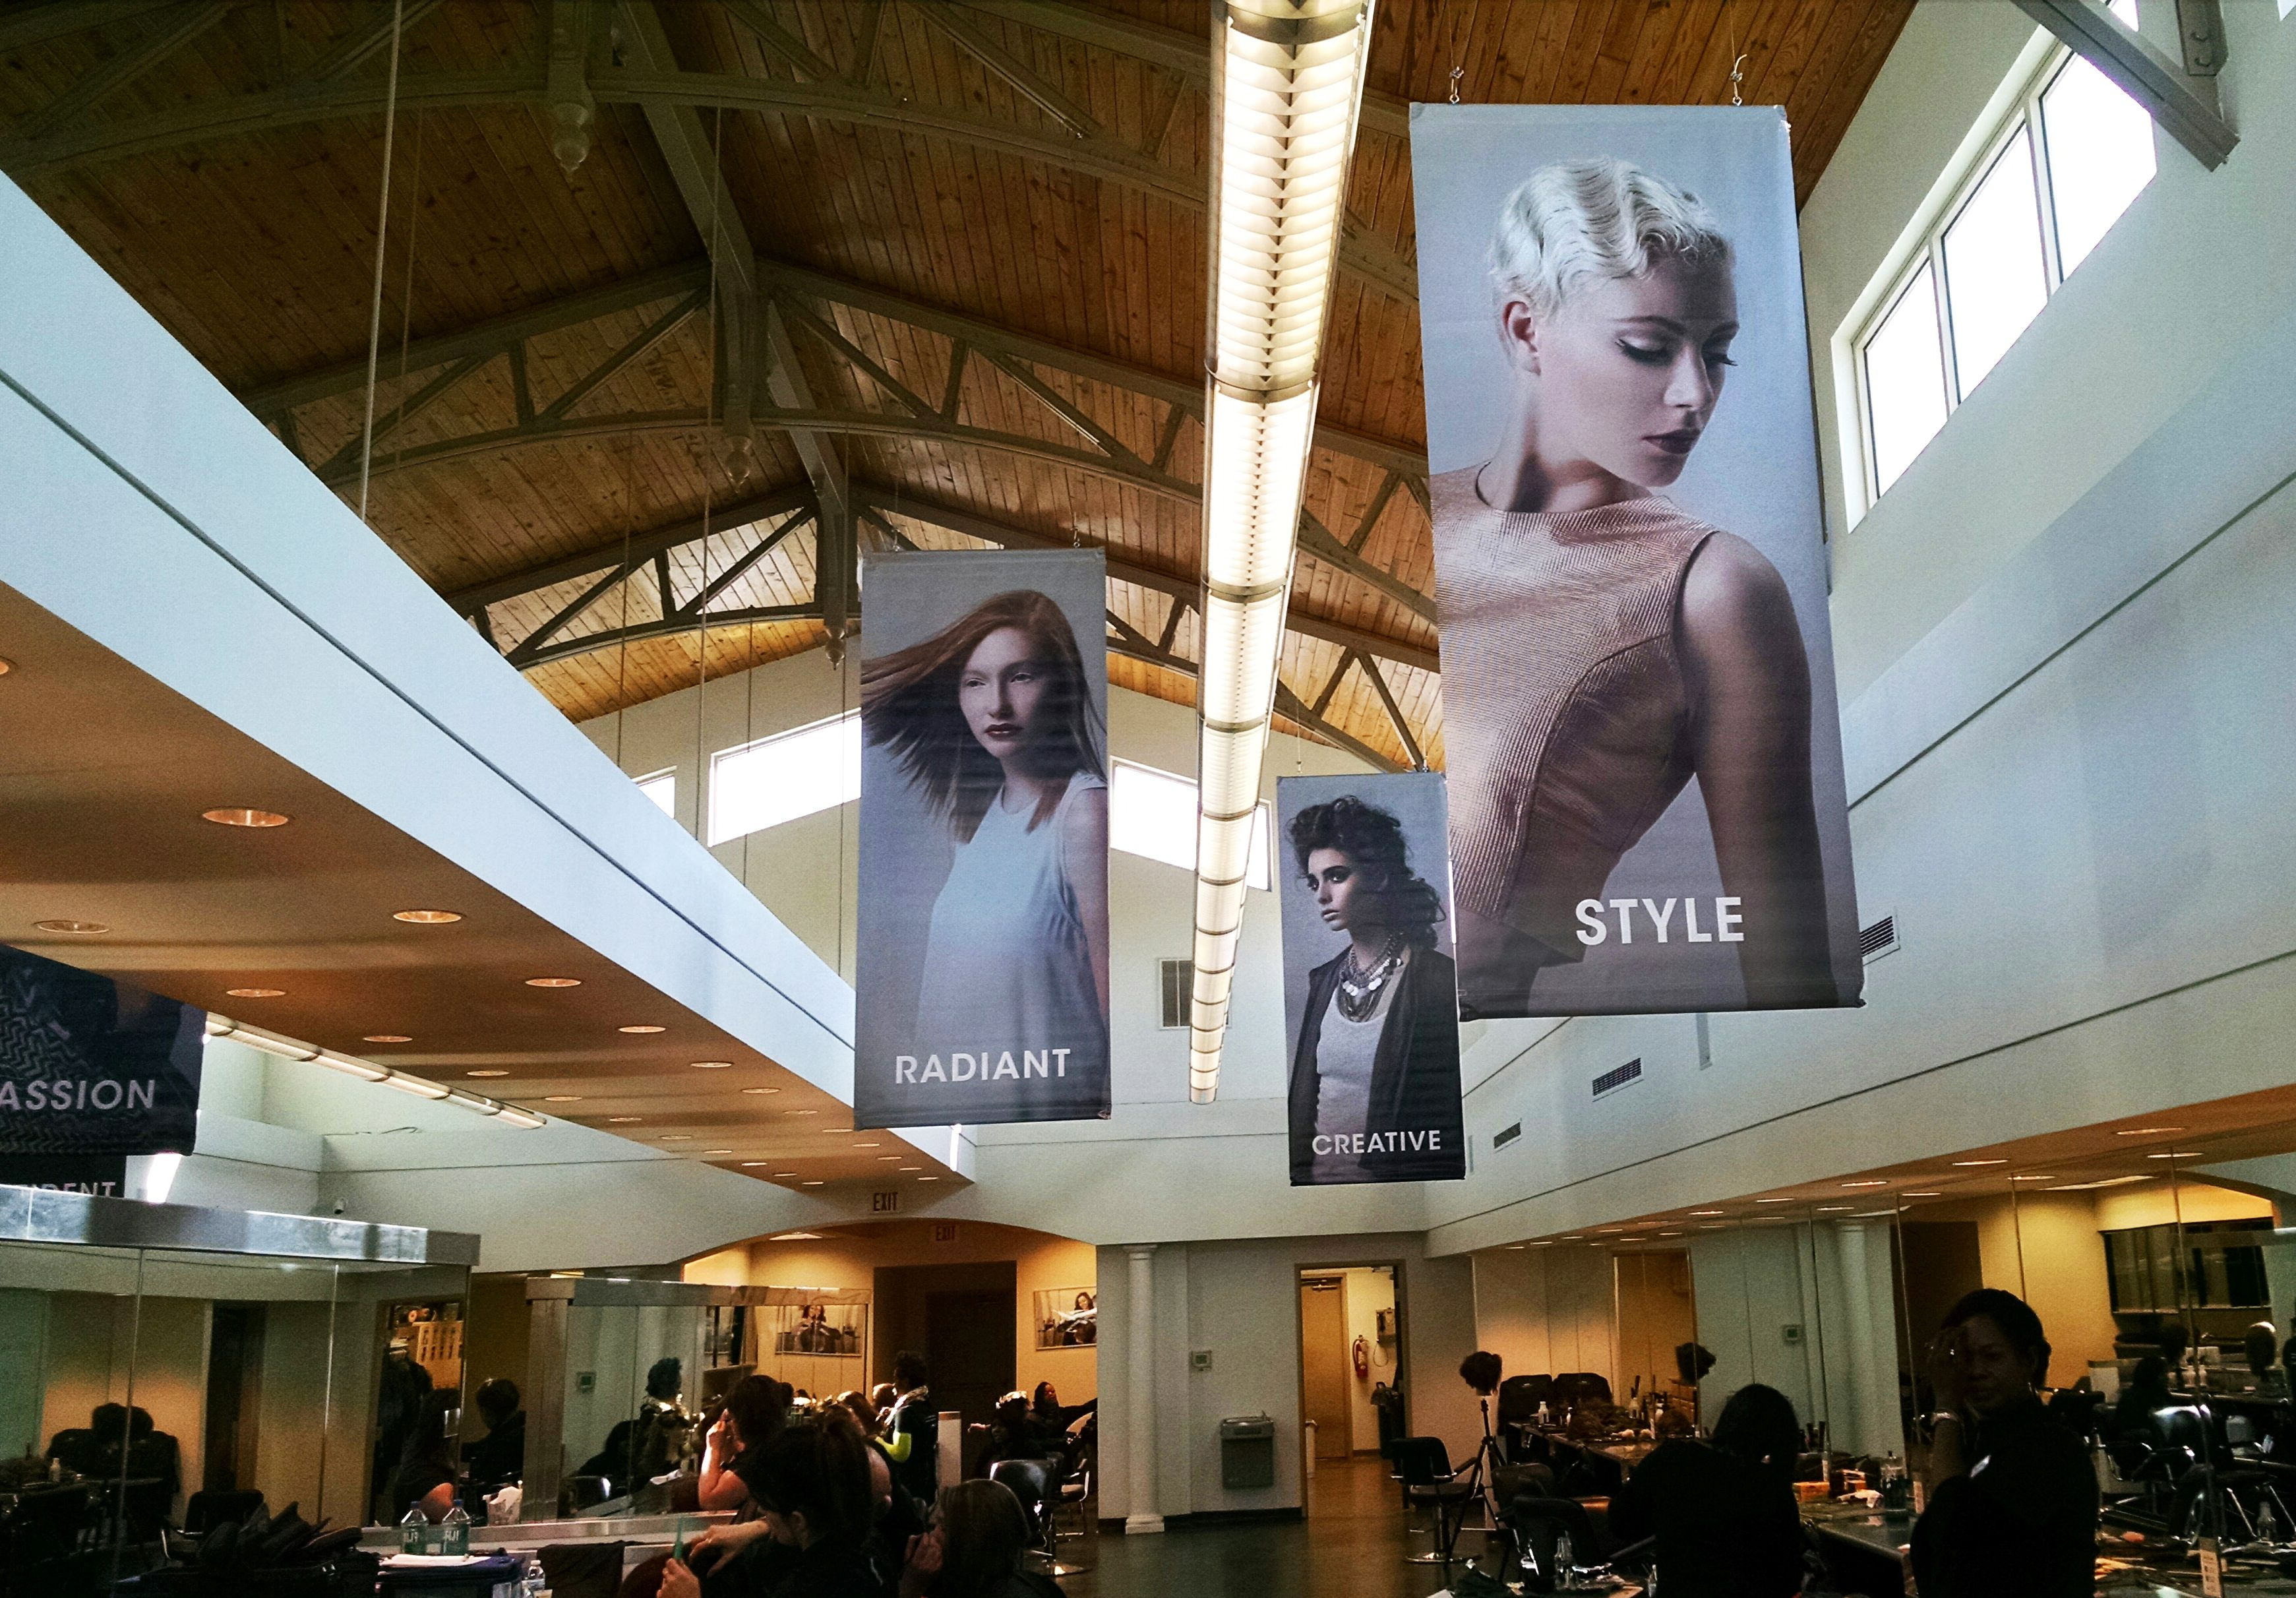 Our Northeastern Indianapolis cosmetology school features